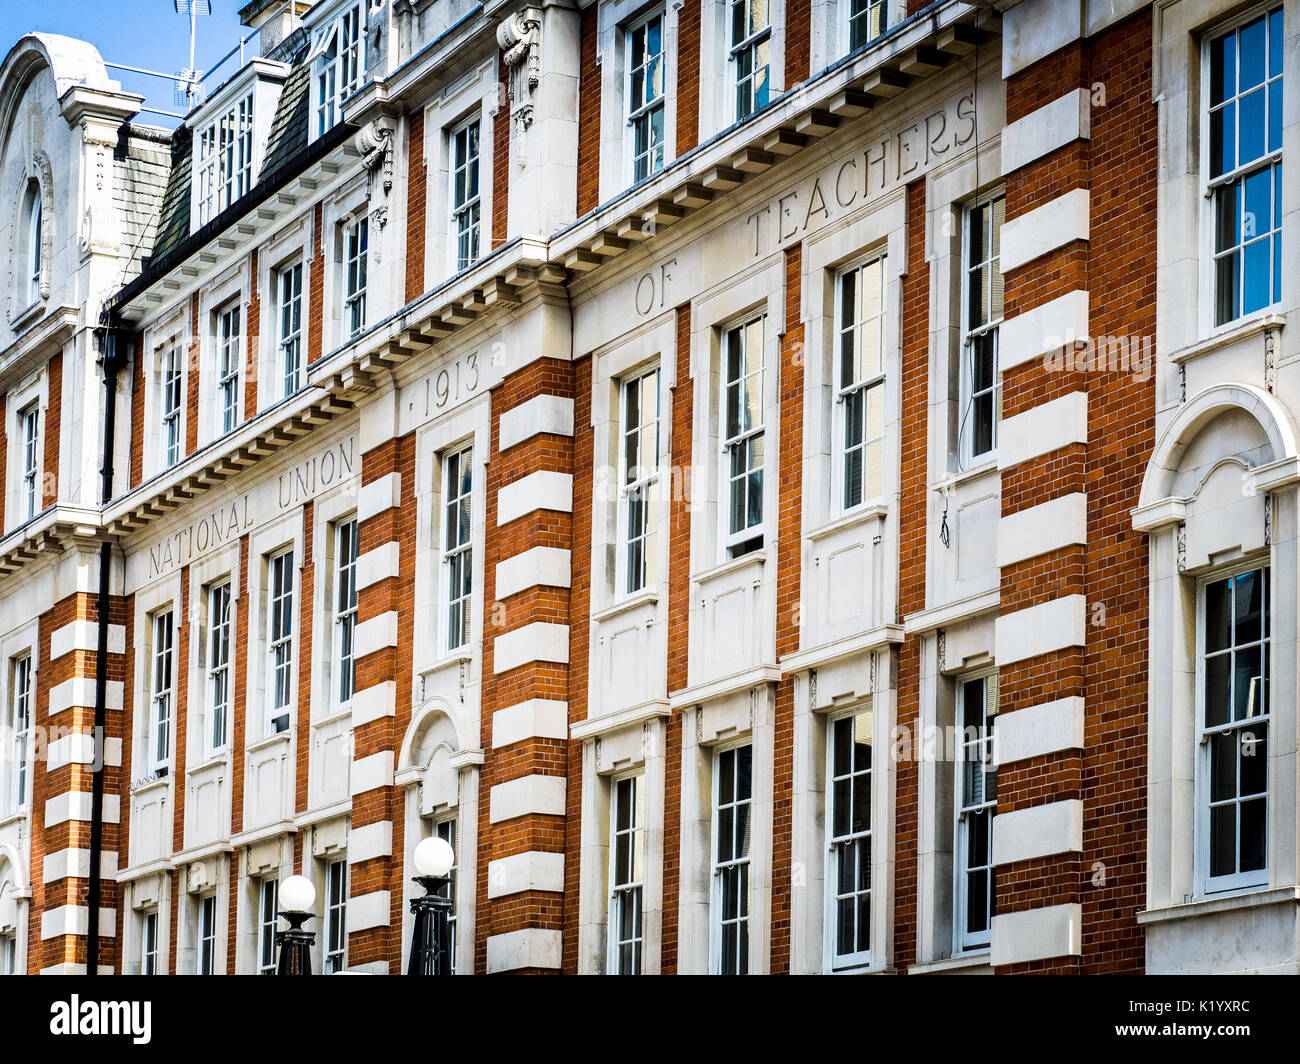 NUT National Union of Teachers Head Office / HQ in London - Hamilton House - Stock Image